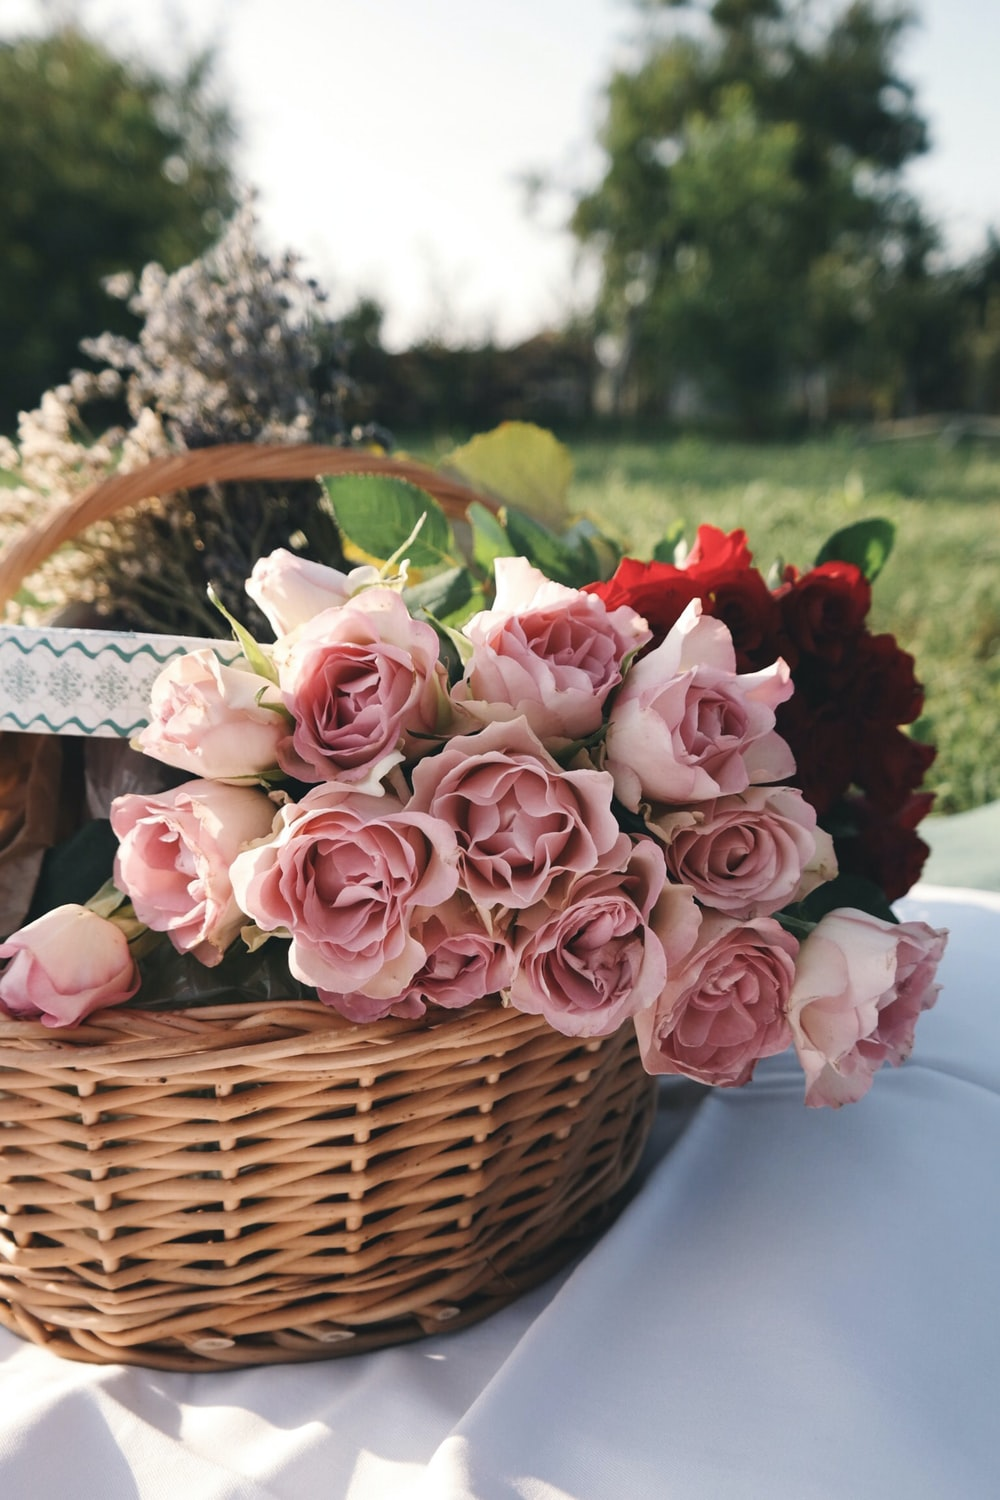 Flower pictures hd download free images on unsplash pink rose on wicker basket izmirmasajfo